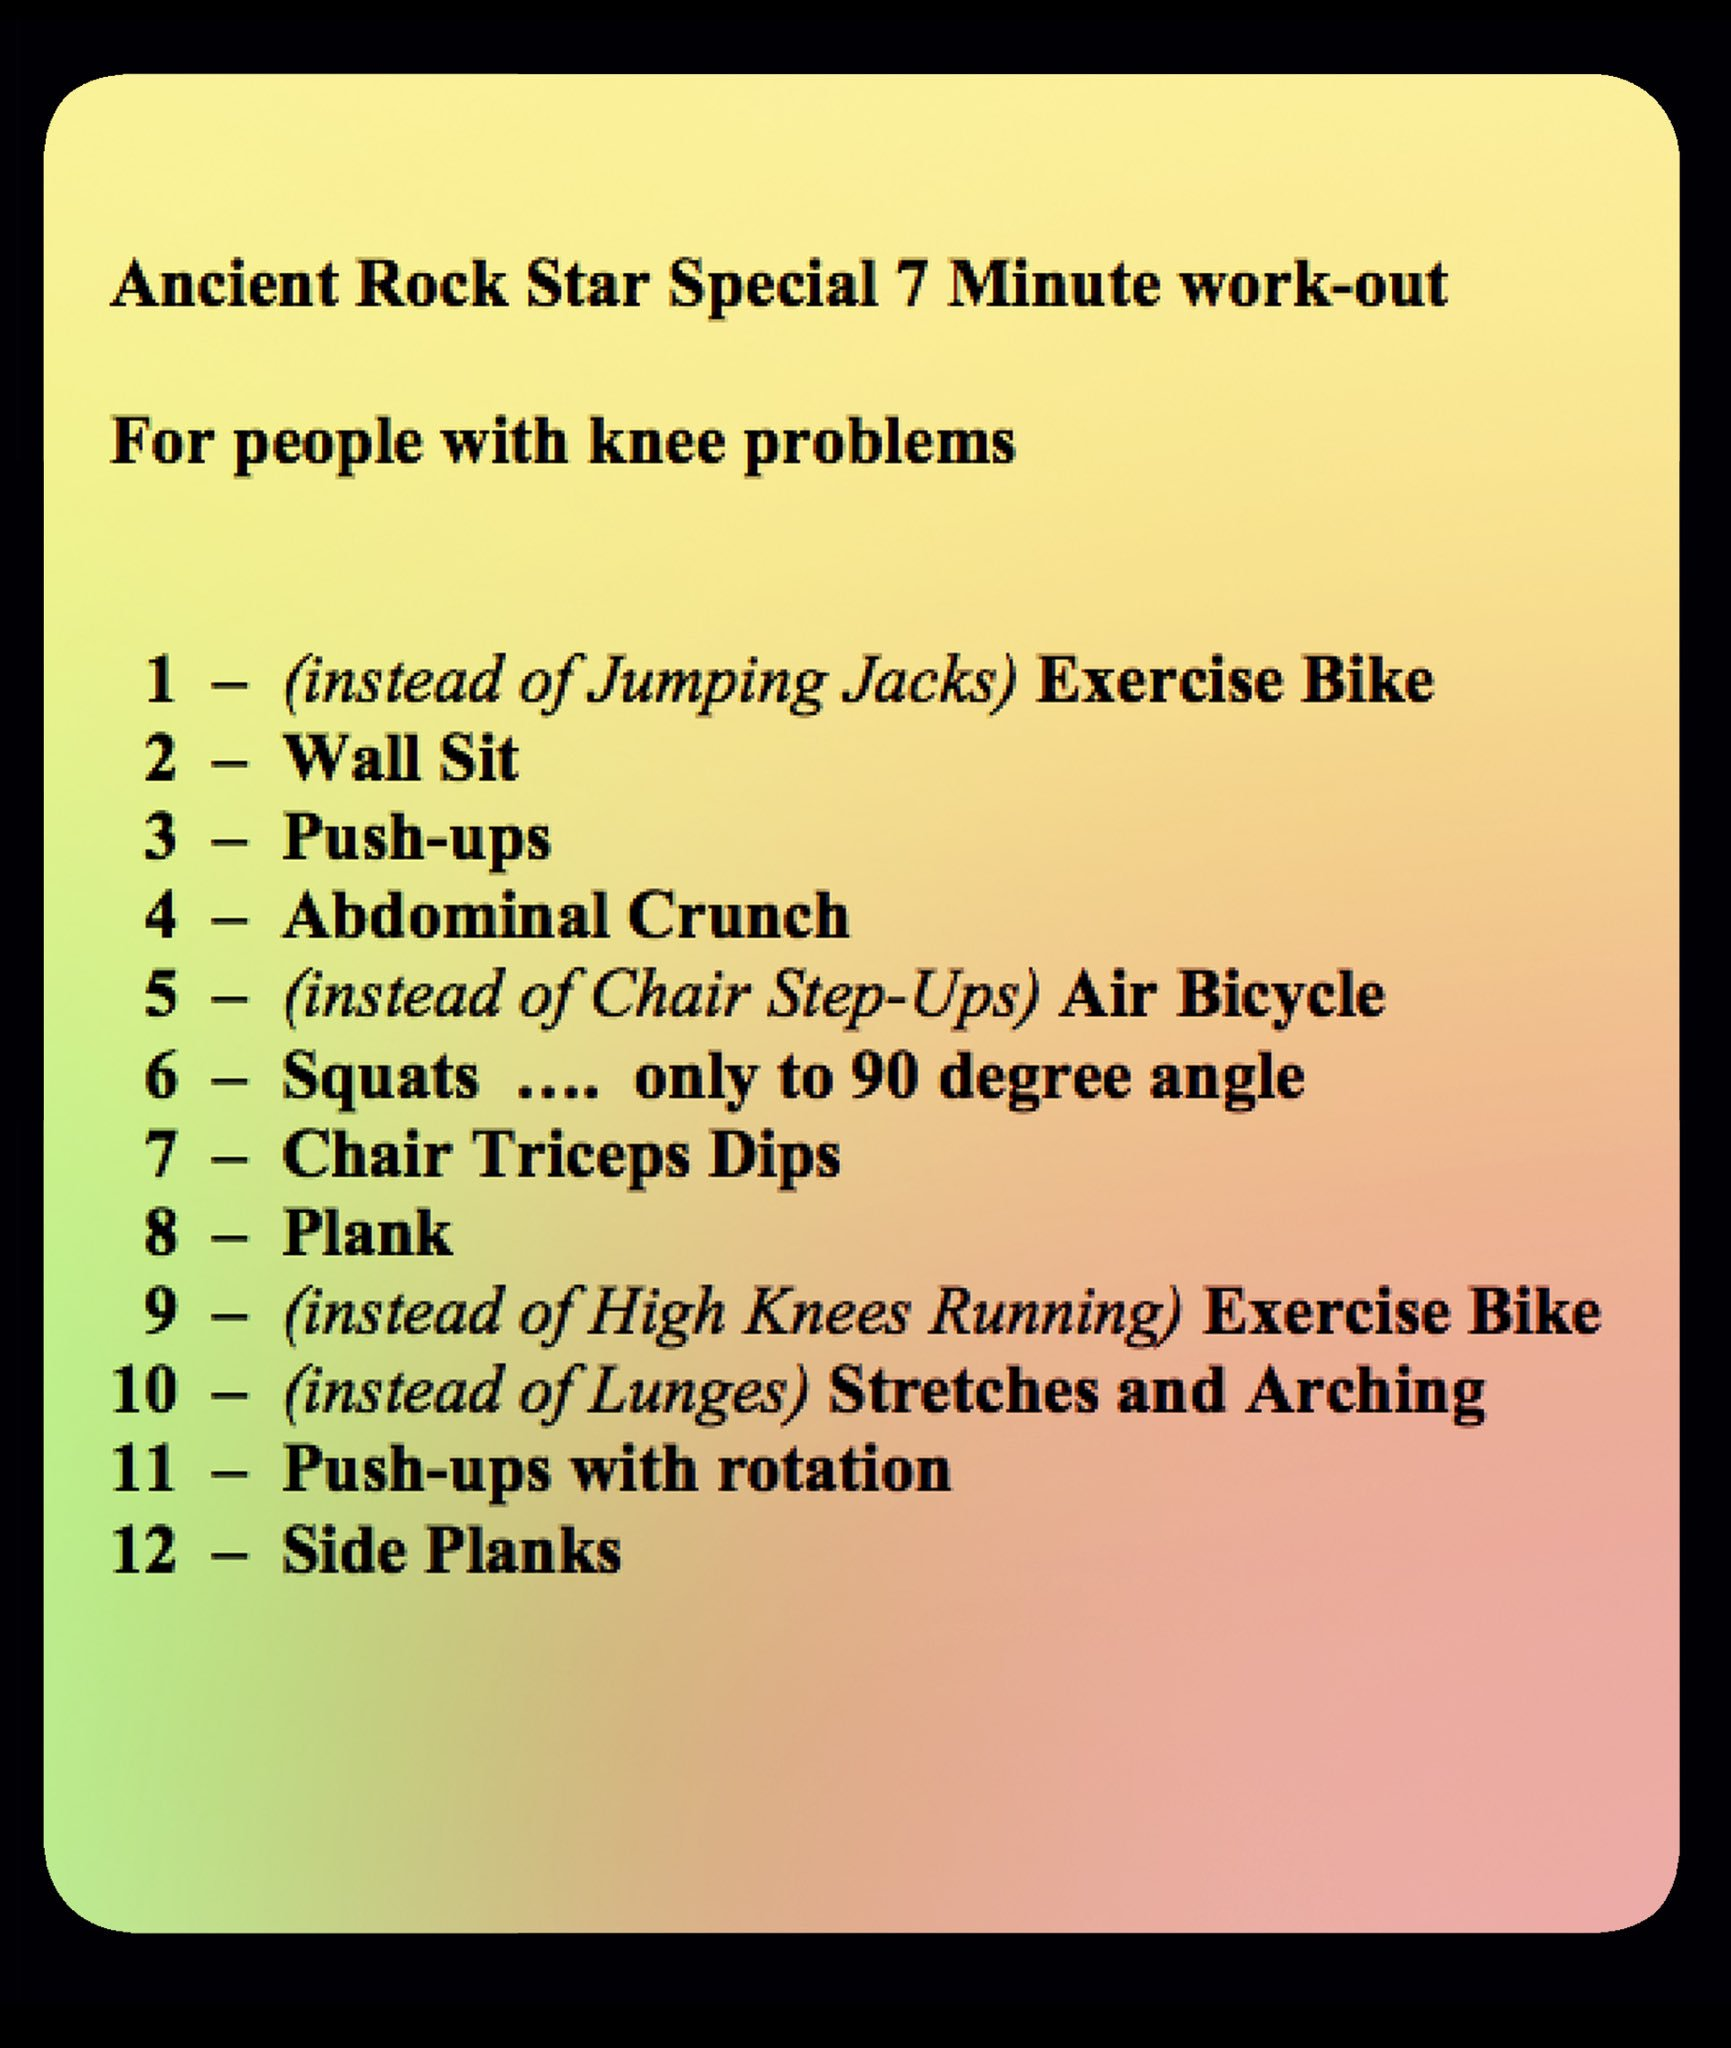 My plan for knee friendly 7 Minute Workout ---- For details see Bri's ol' Soapbox at https://t.co/3CRchzov6L Bri https://t.co/5nMR9PJYiw